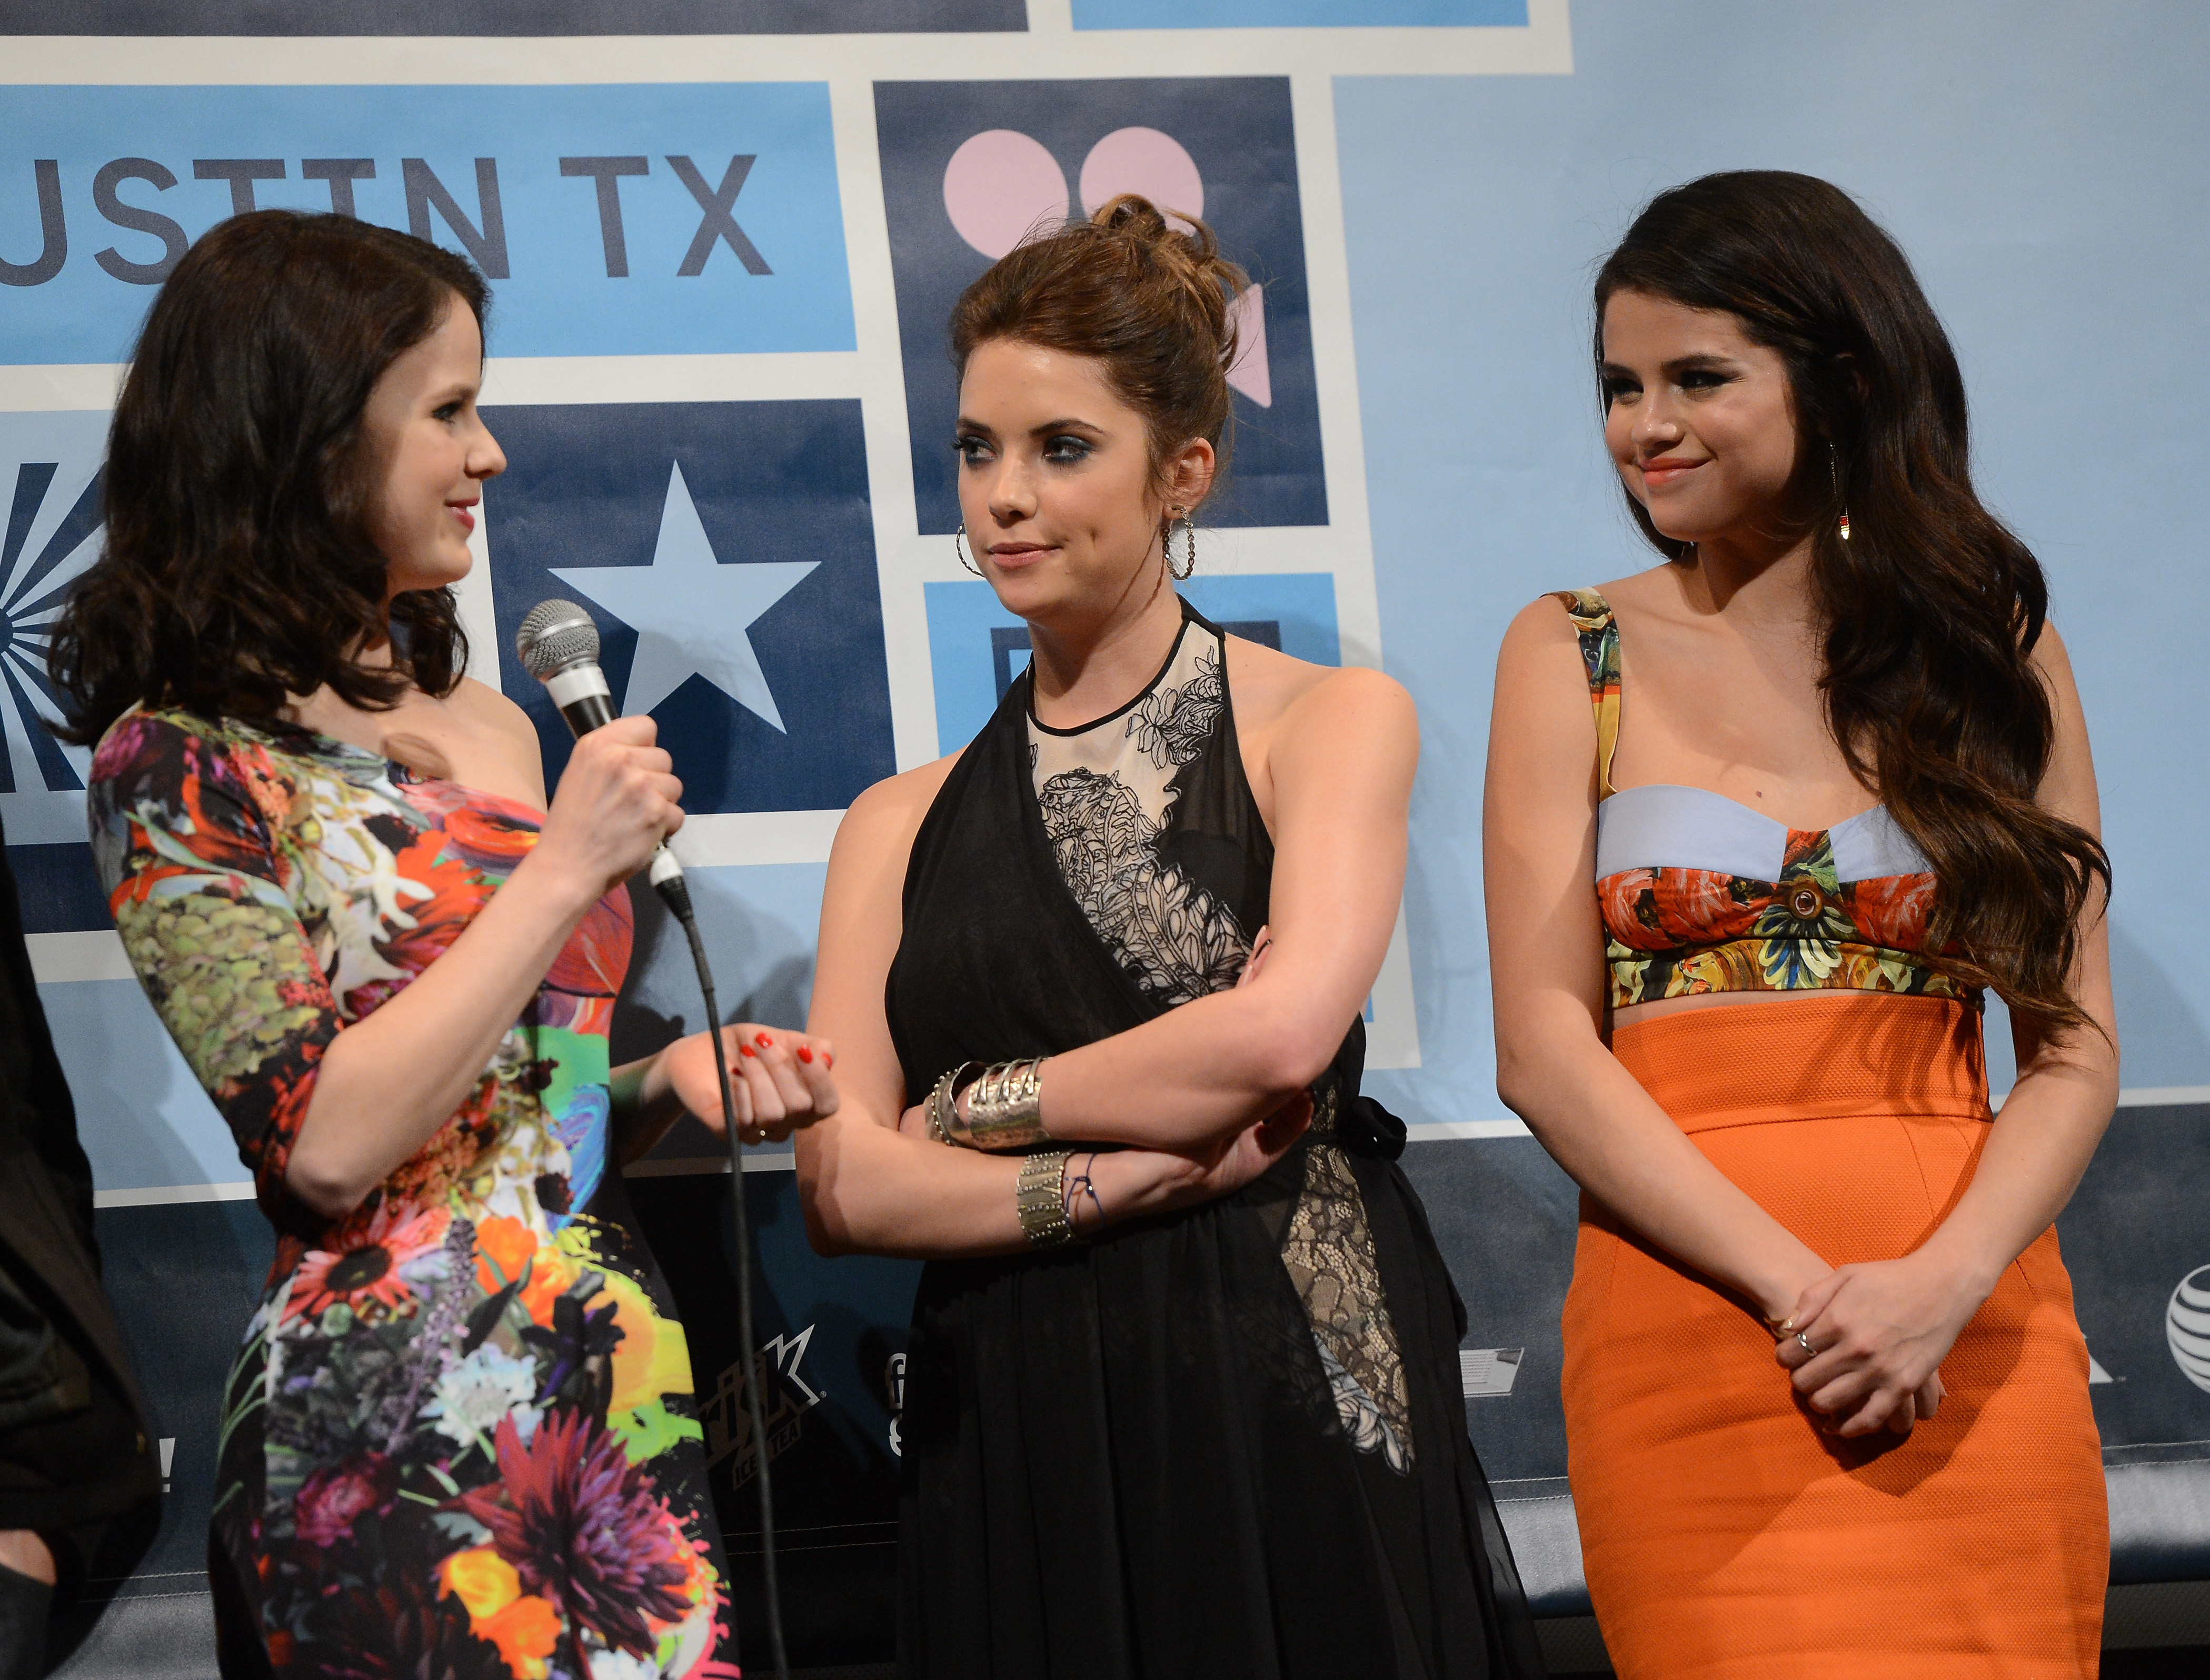 Rachel Korine, Ashley Benson, and Selena Gomez attended a Spring Breakers Q&A together.